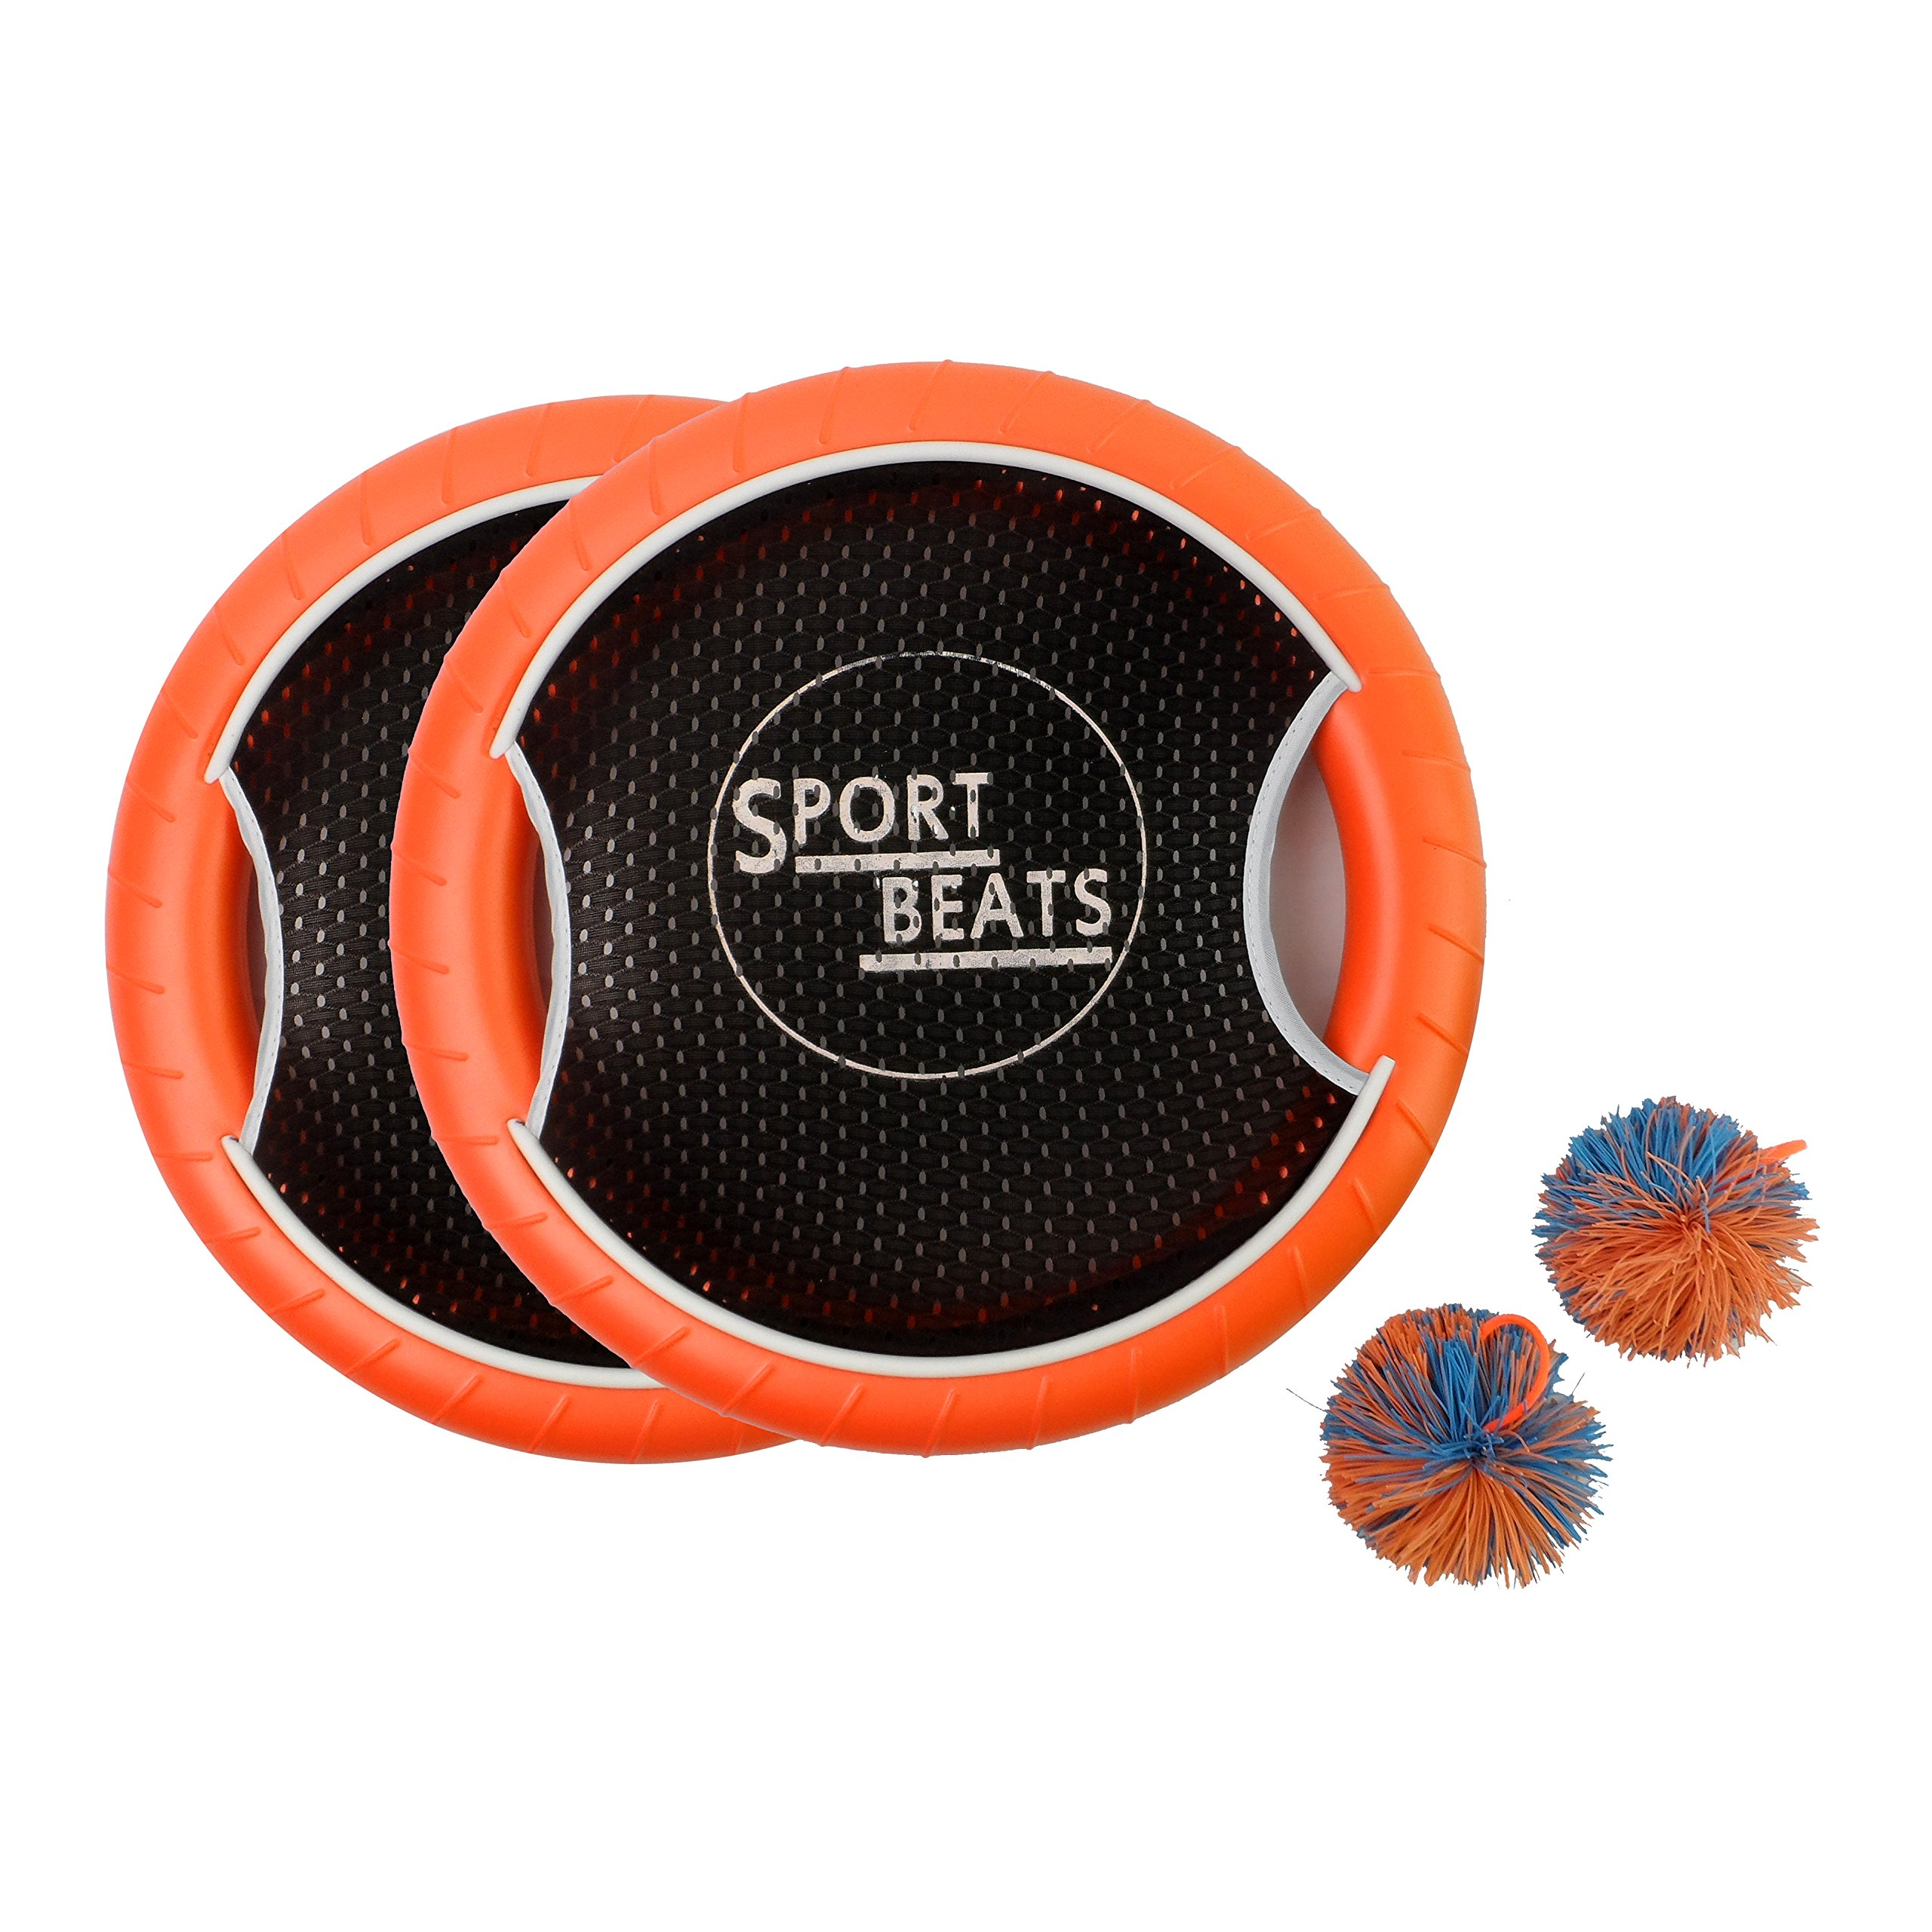 SPORT BEATS Outdoor Bouce-Back Trampoline Paddle Ball Game Set For 2 Player 1 Balls included